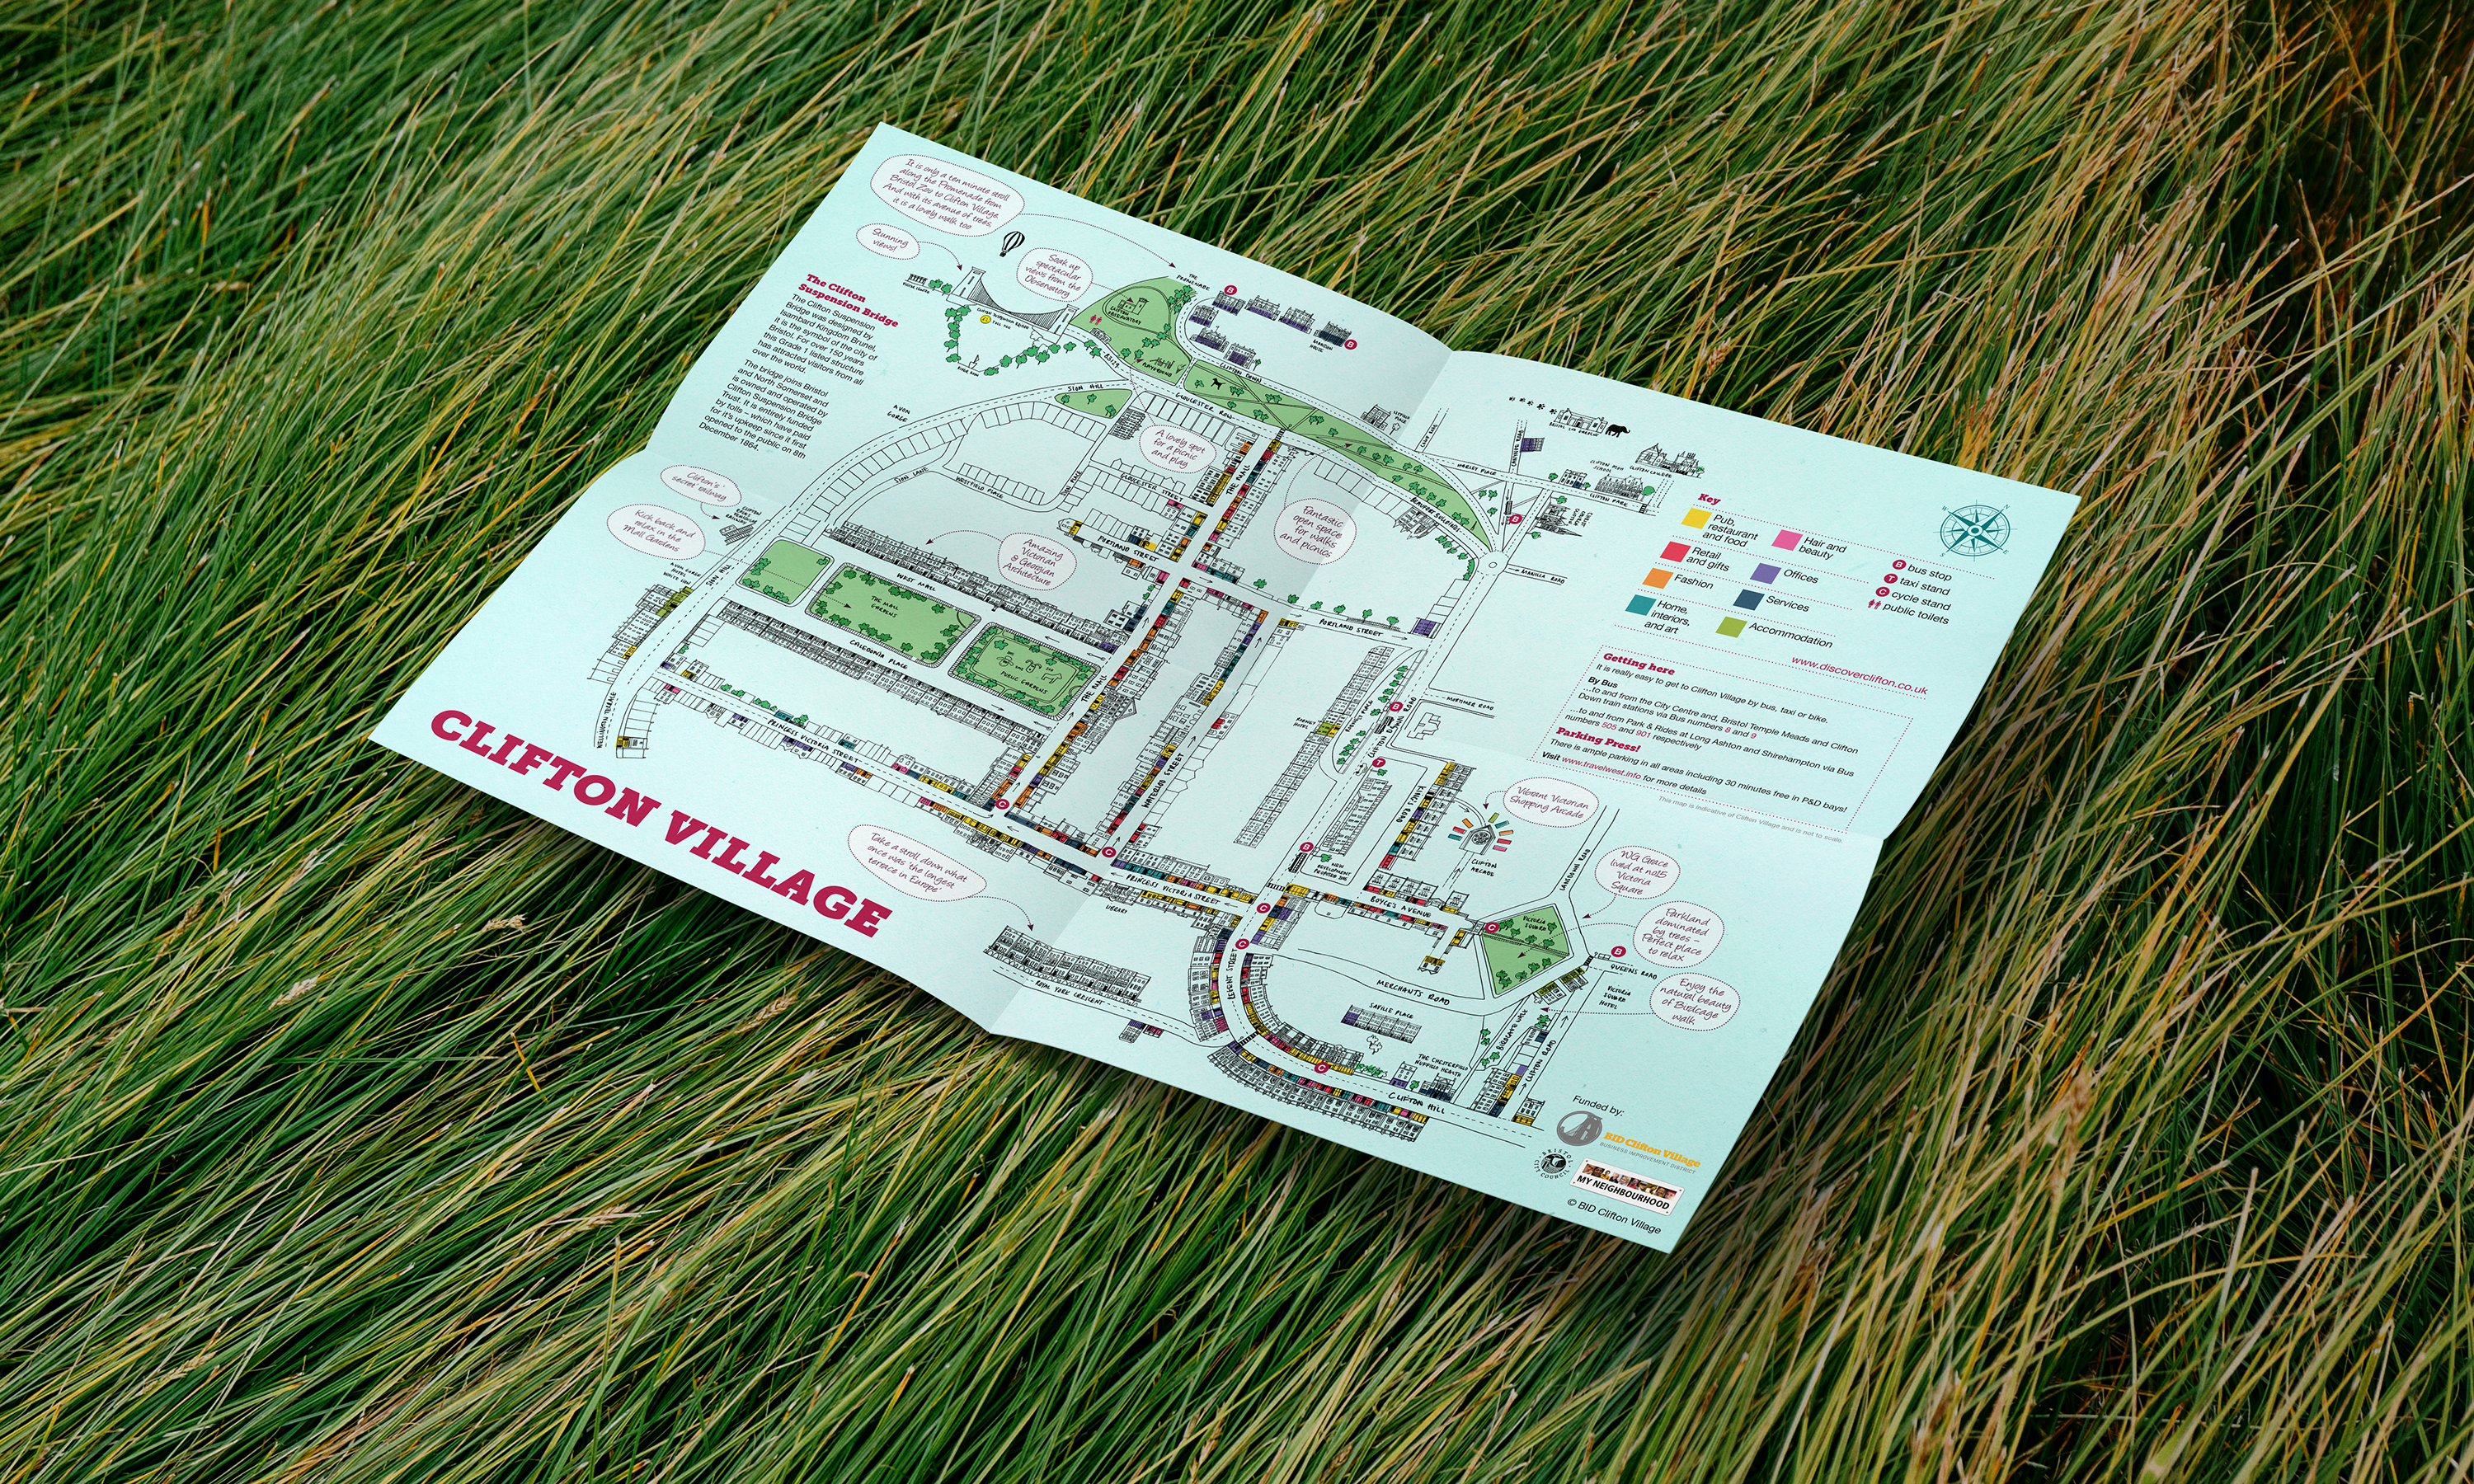 Discover Clifton Map Leaflet front art